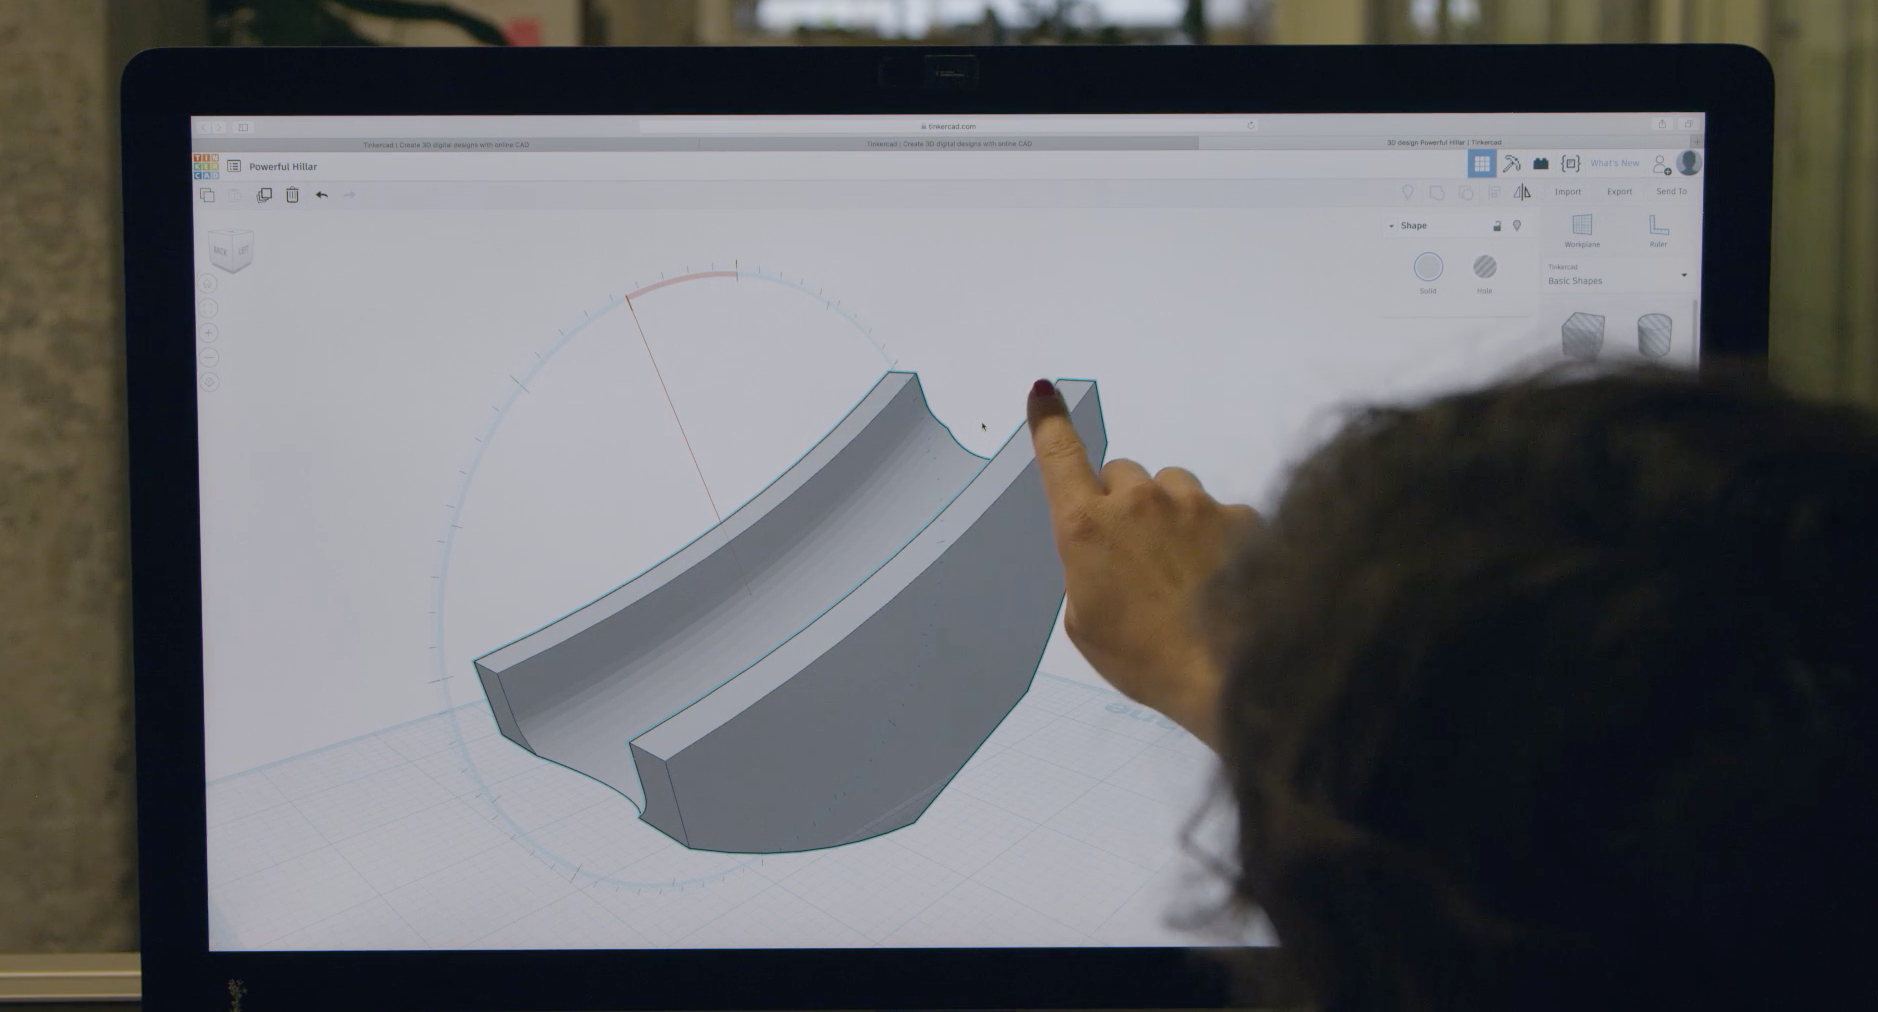 Computer screen showing a 3D model. Woman pointing to edge of 3D model.